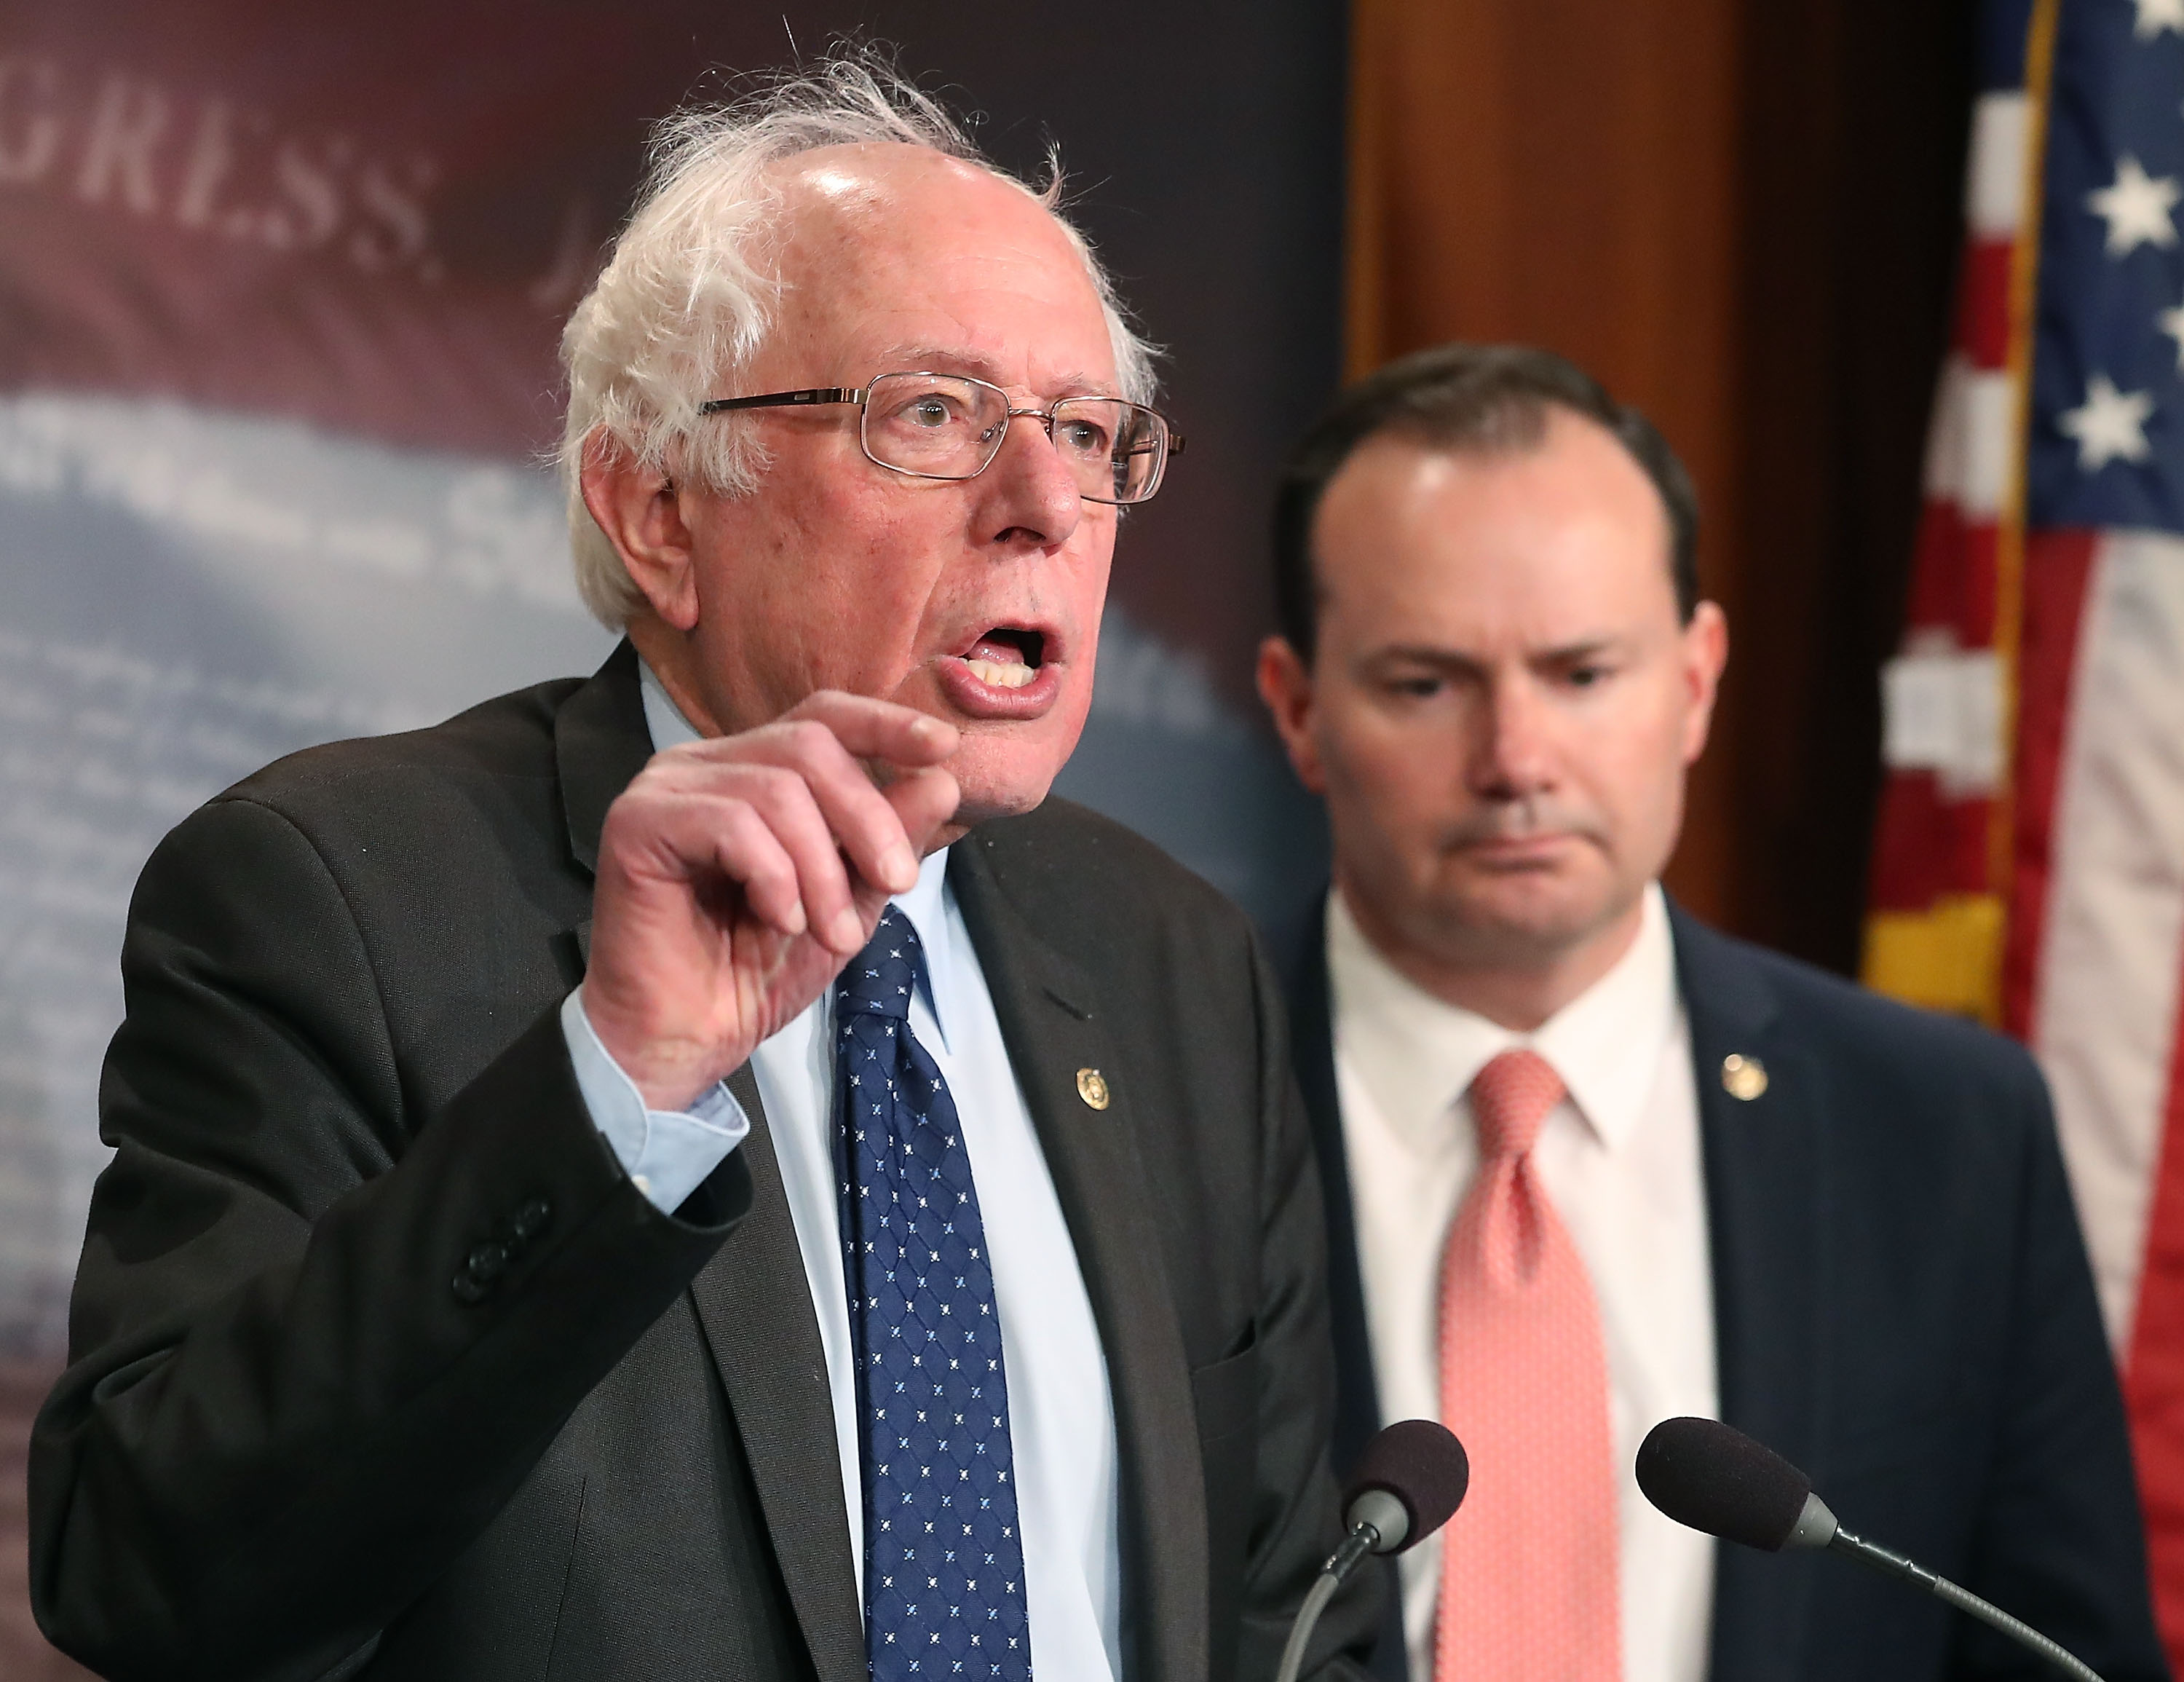 Sen. Bernie Sanders, I-Vt., left, and Sen. Mike Lee, R-Utah, introduce a joint resolution to remove U.S. armed forces from hostilities between the Saudi-led coalition and the Houthis in Yemen, on Capitol Hill Feb. 28, in Washington, D.C. They have since reintroduced the measure, which Sanders expects to see a vote before year's end. (Photo by Mark Wilson/Getty Images)